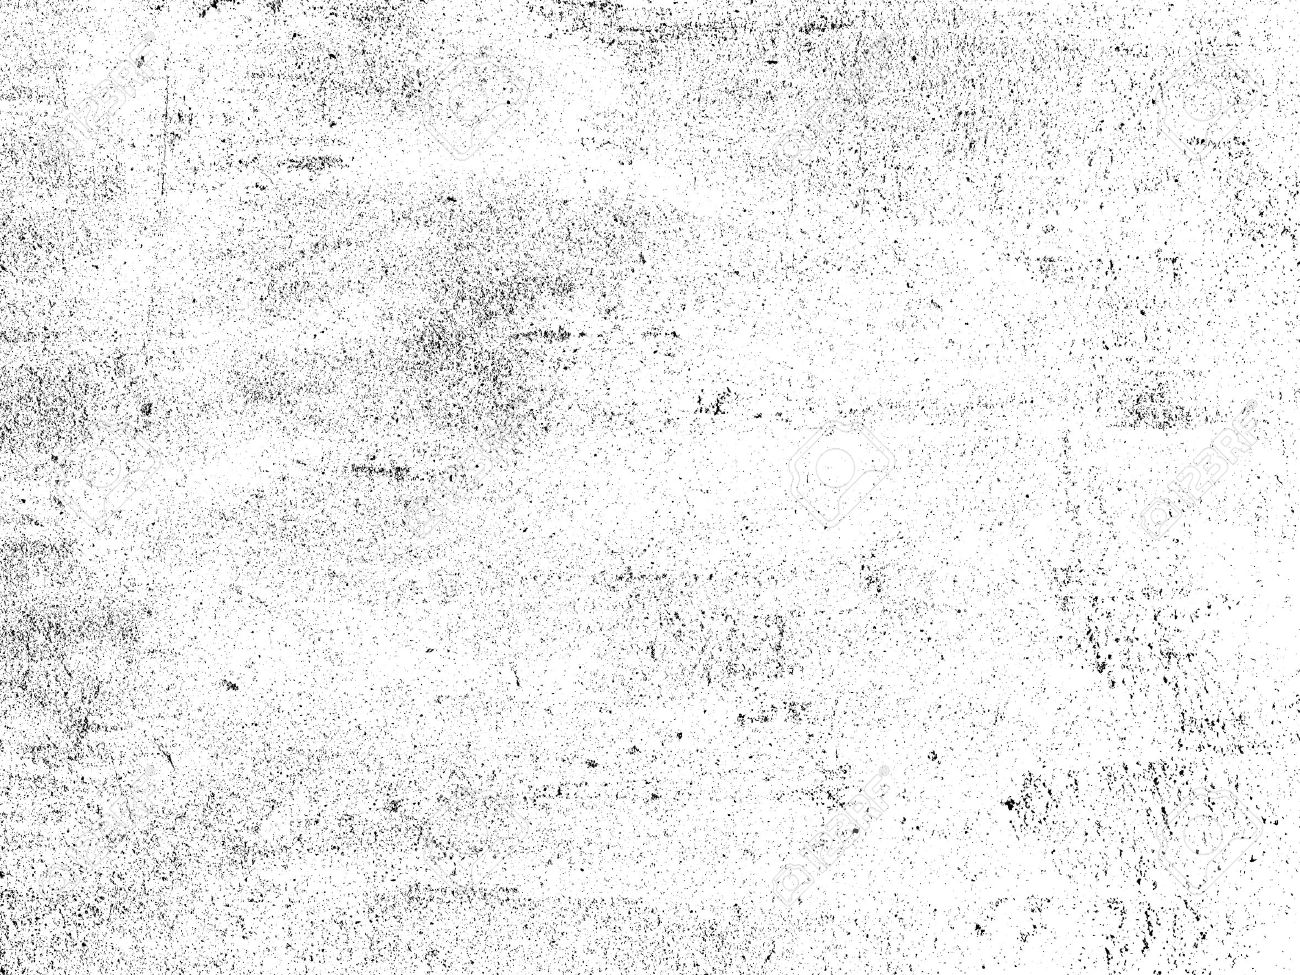 Abstract Dust Particle And Grain Texture On White Background Dirt Overlay Or Screen Effect